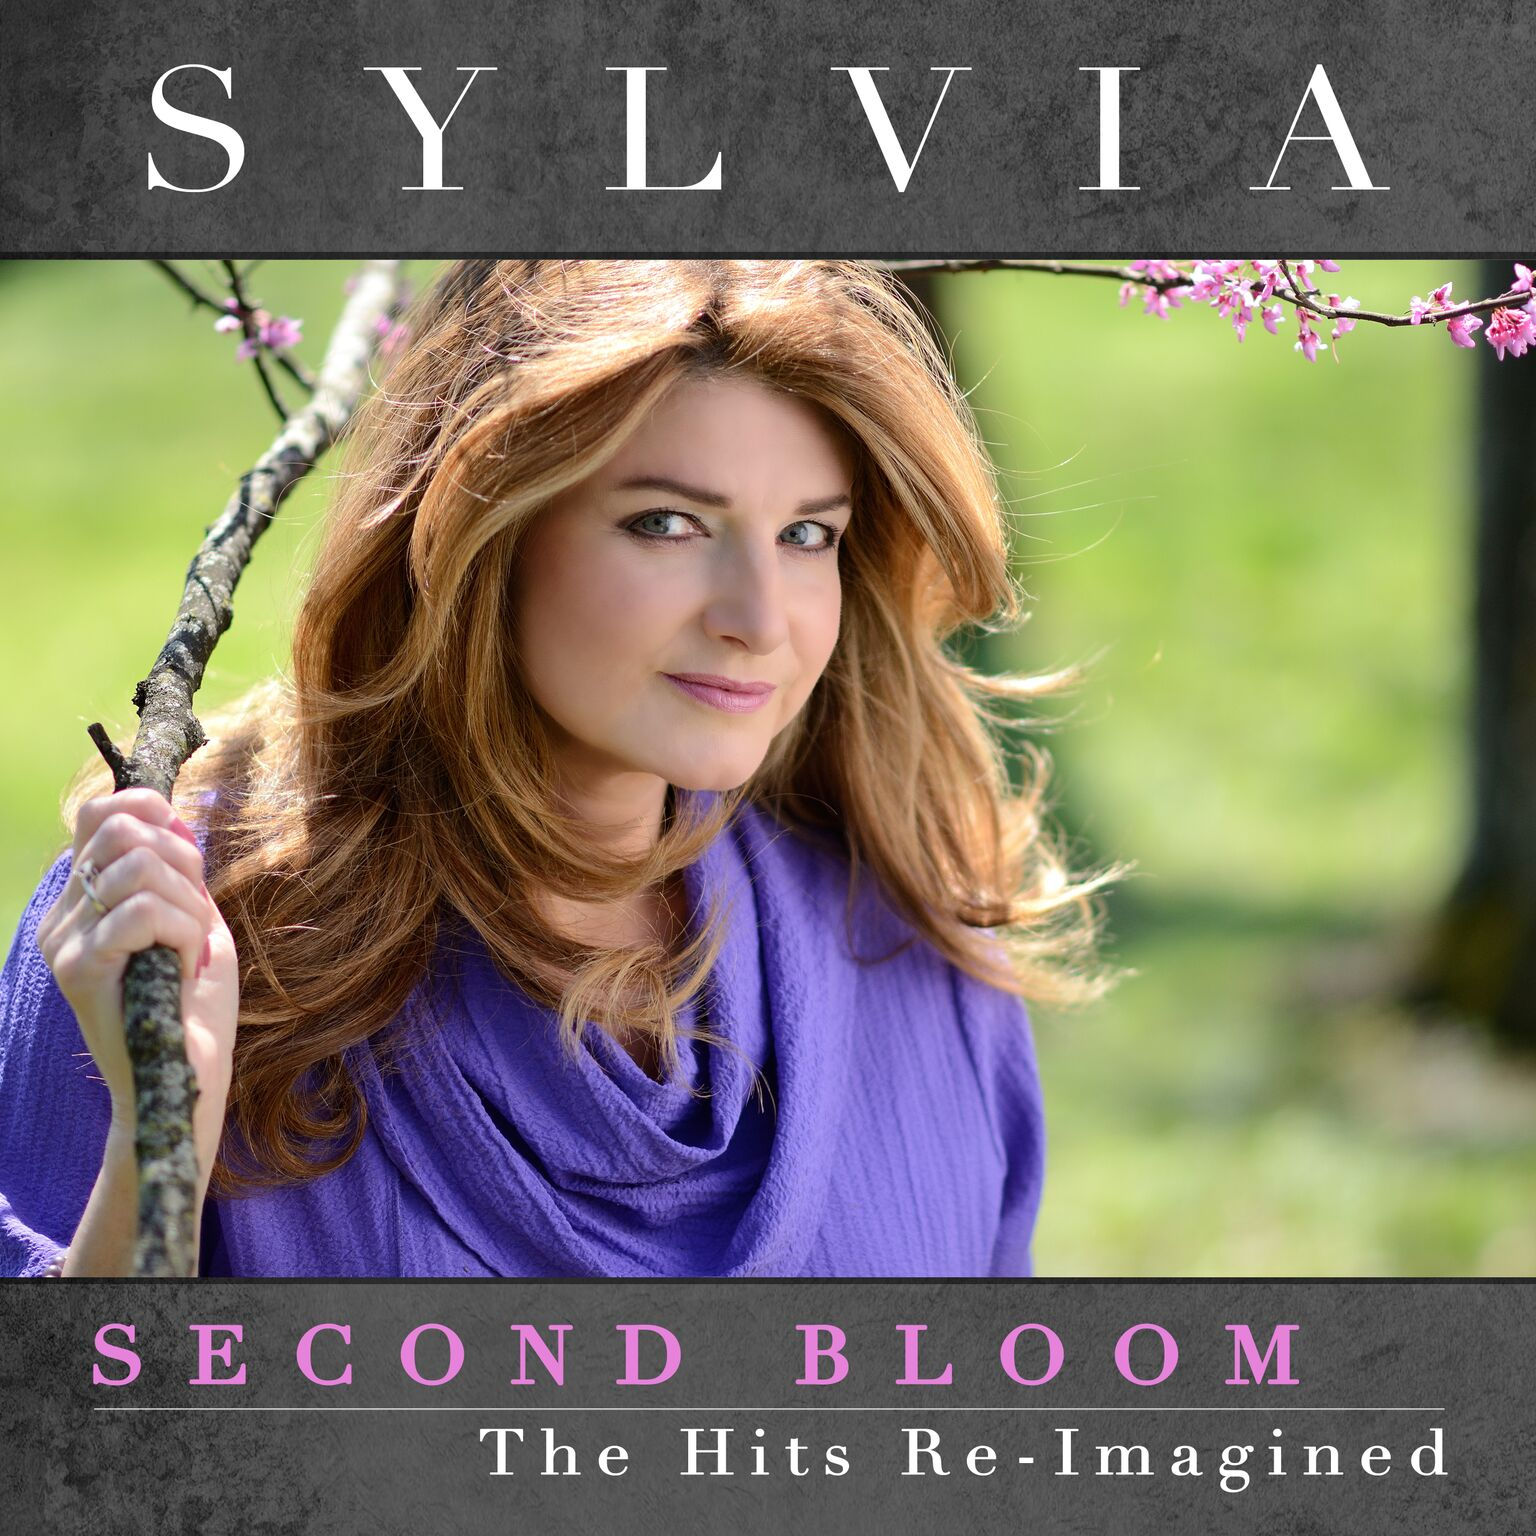 Sylvia will greet CMA Fest fans with new music; performances, booth signings & more